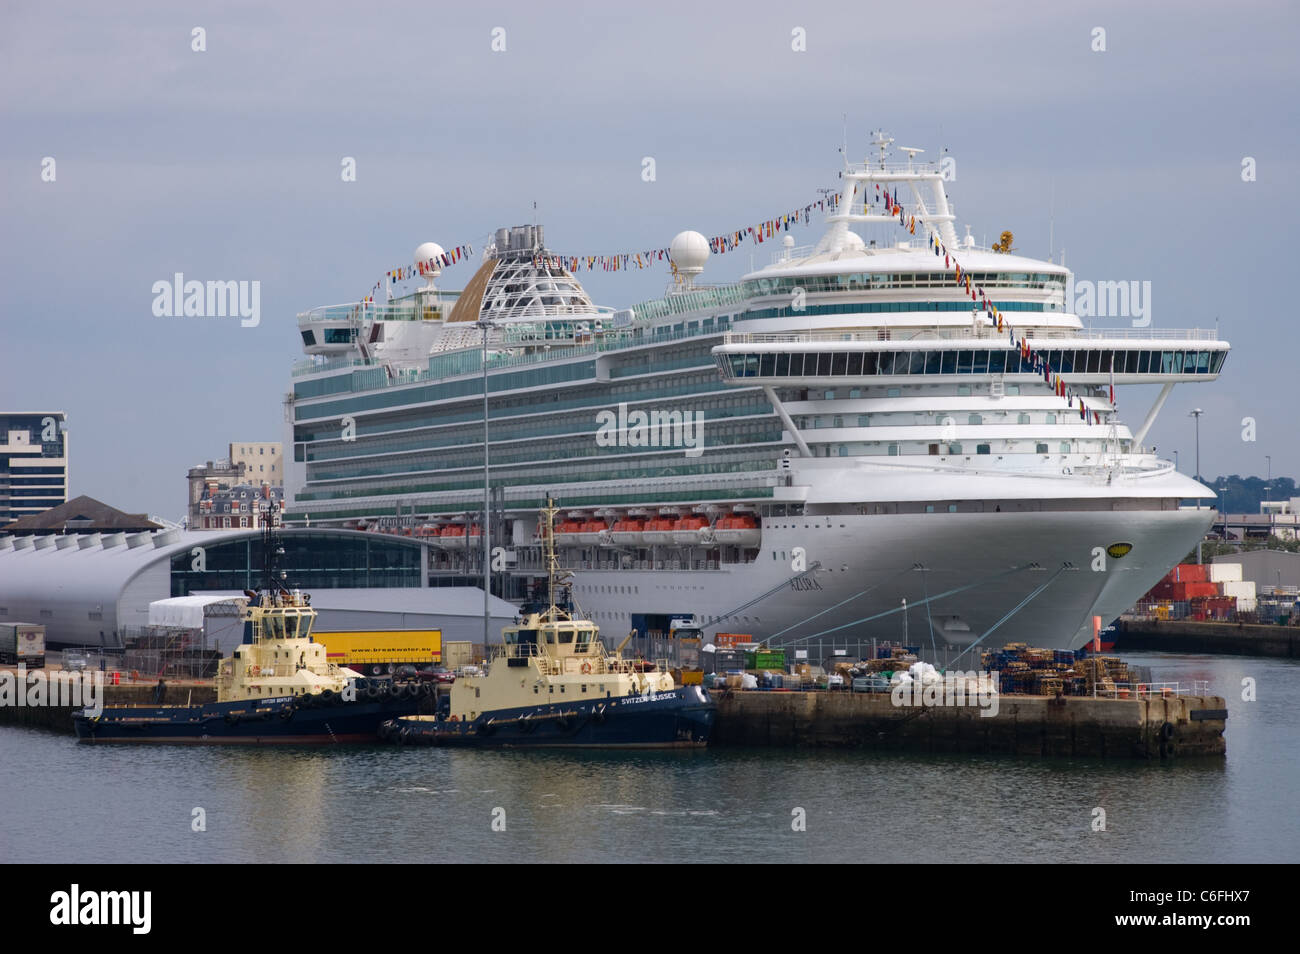 Azura one of the largest cruise ships in the P&O Cruises fleet docked at Southampton. - Stock Image